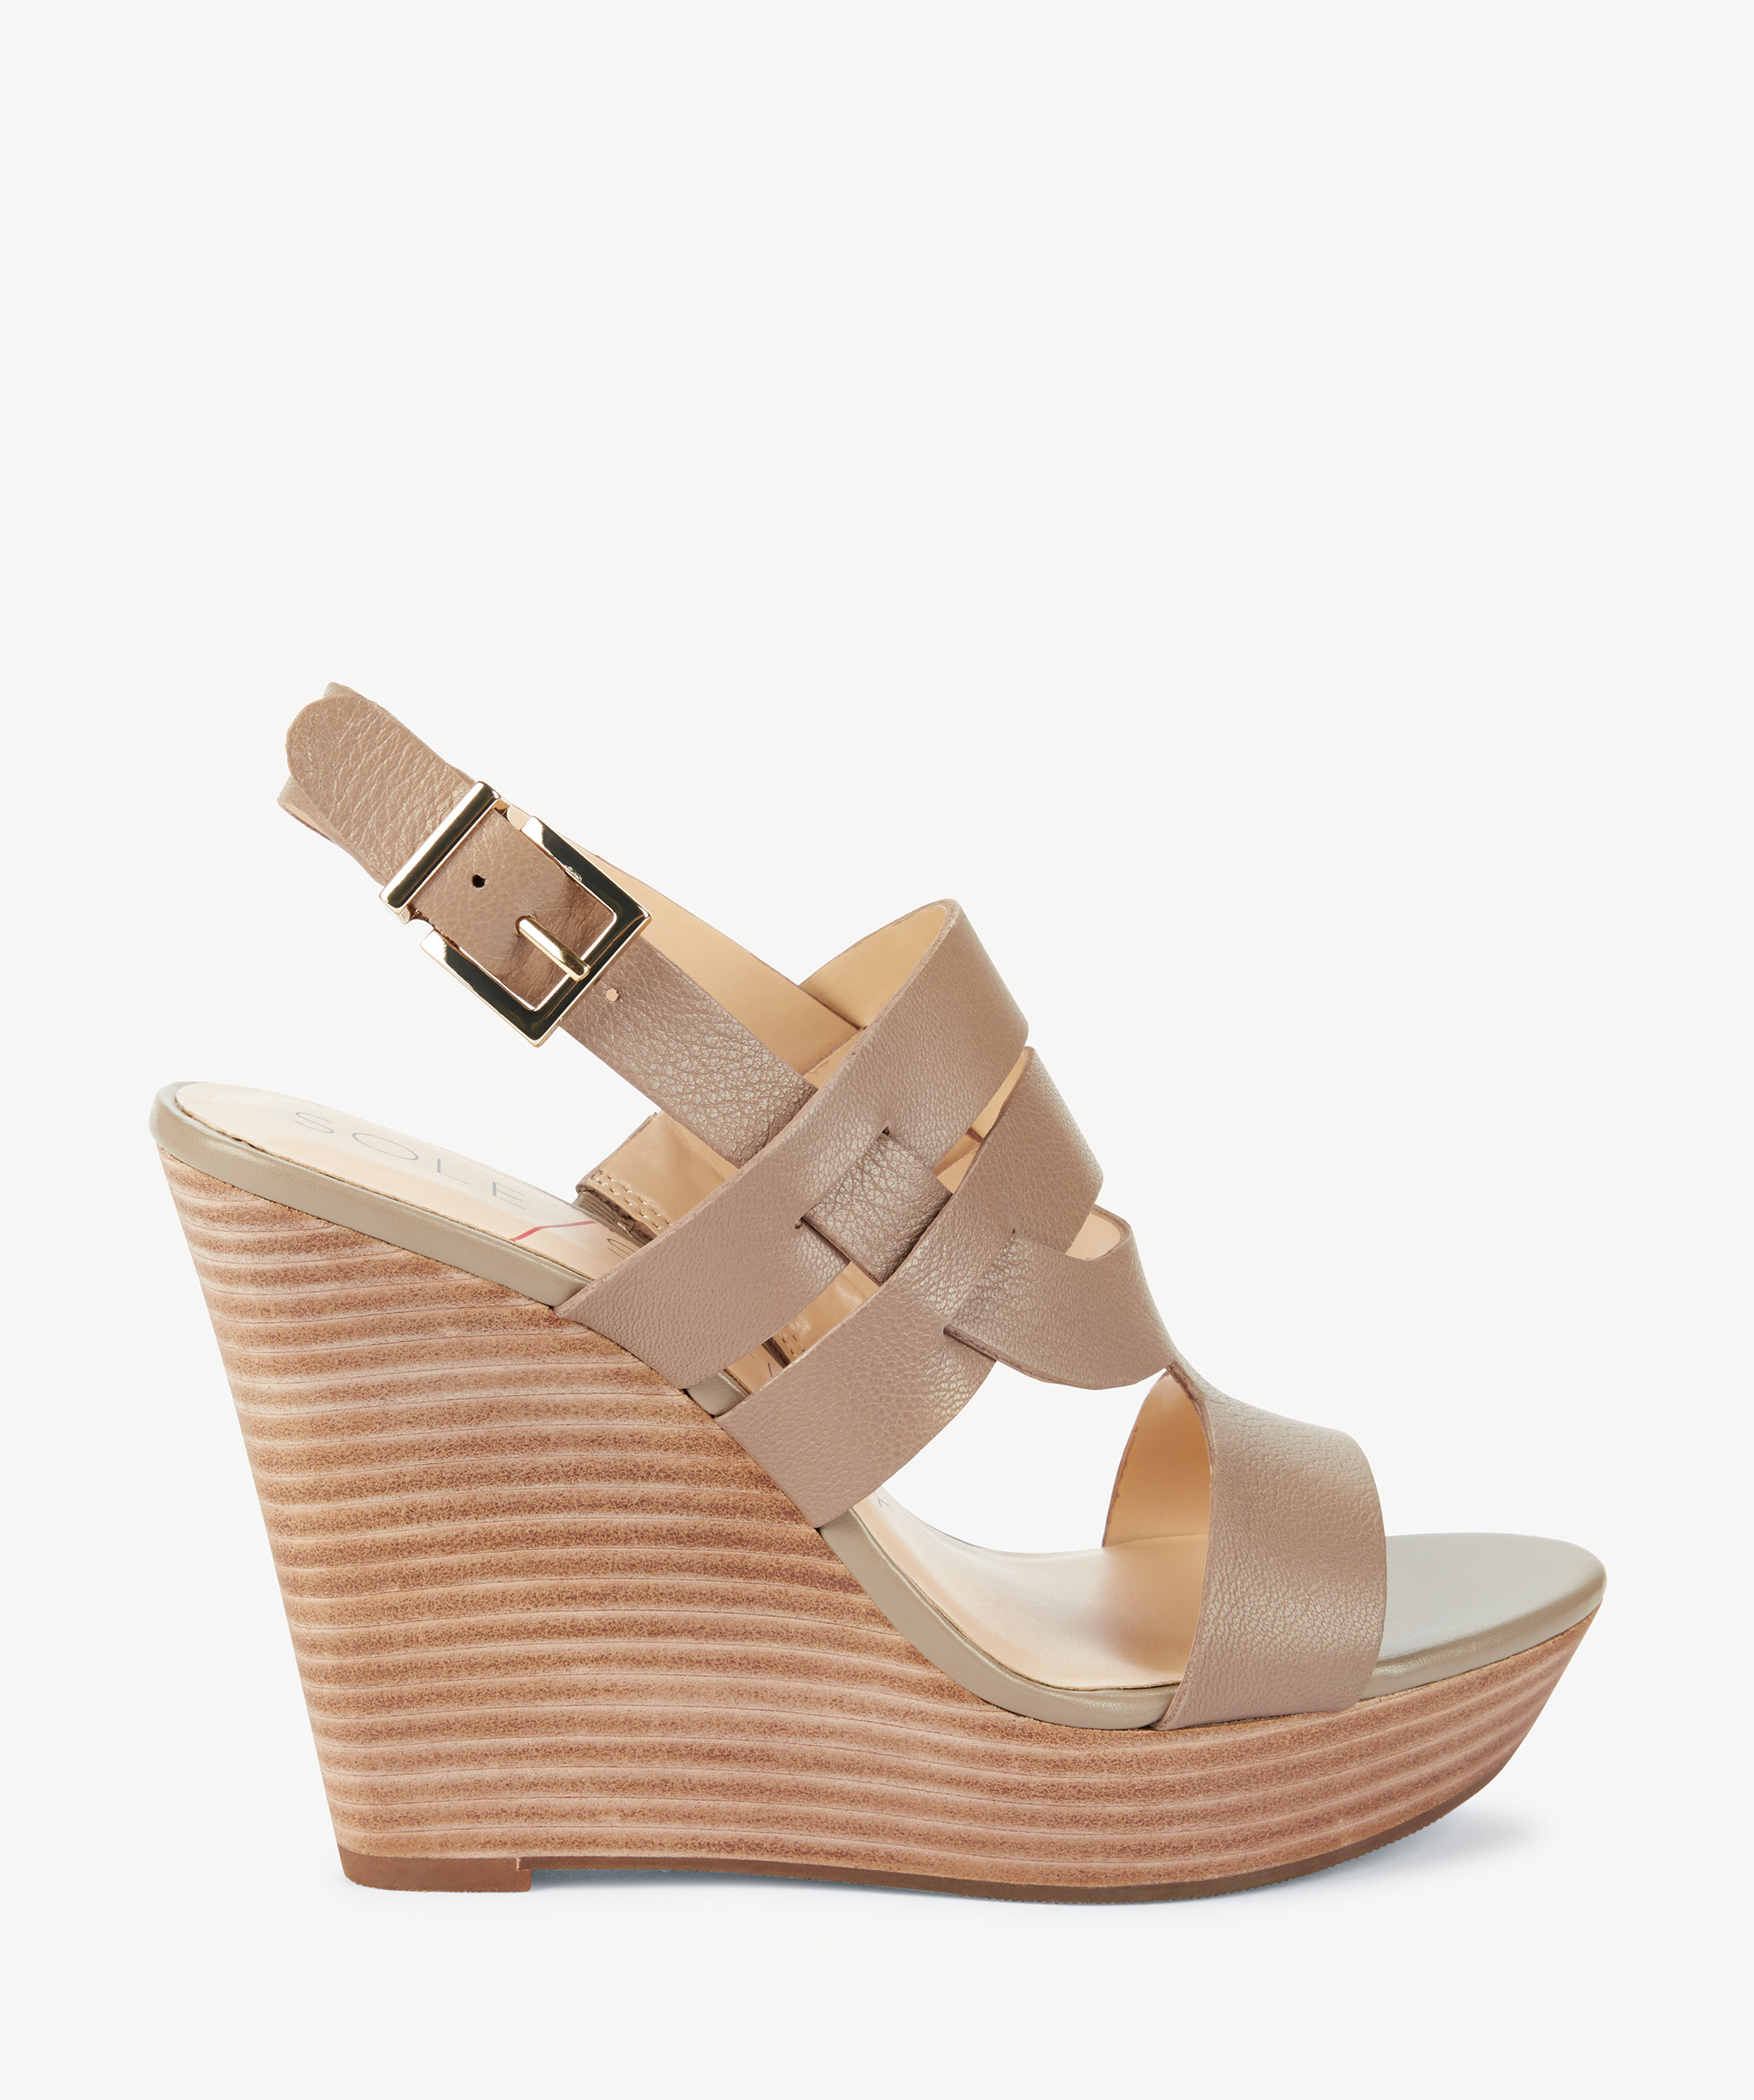 649525a15f Sole Society Jenny Platform Wedges Sandals Night Taupe | Size 9.5 Leather